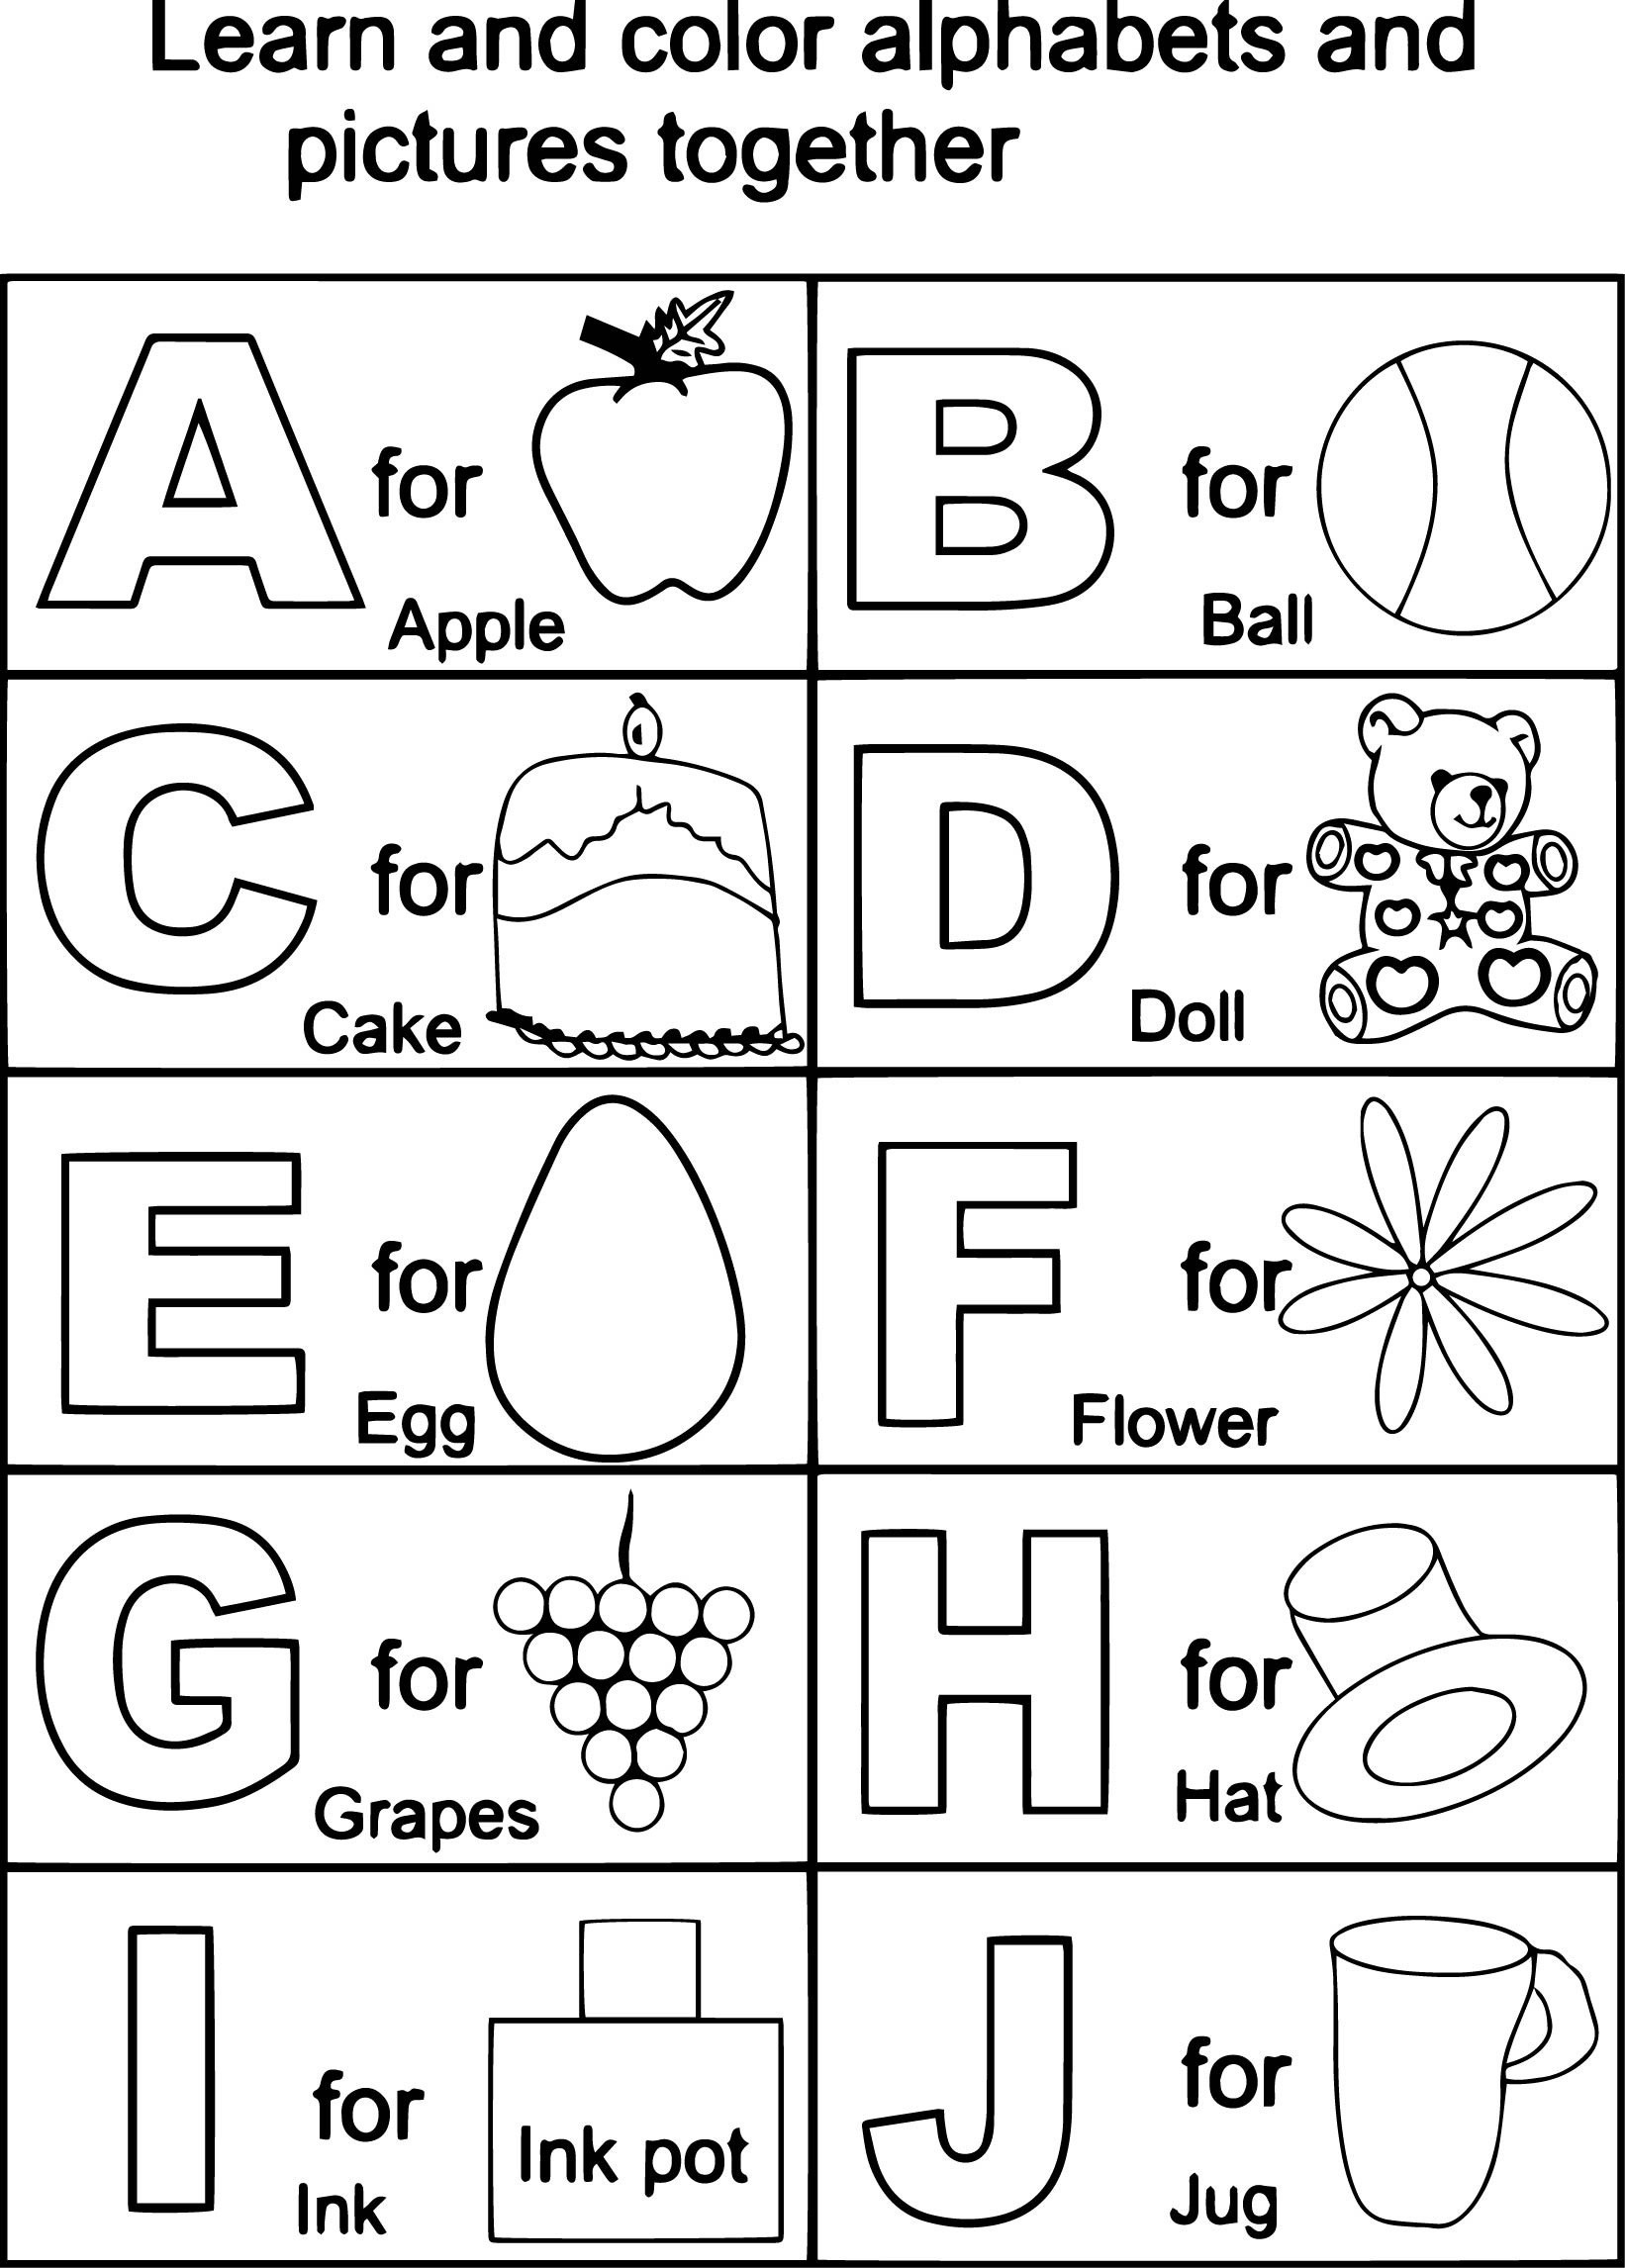 letter d coloring pages preschool black | 60 Alphabet Flash Cards to Print for Making Learning Fun ...